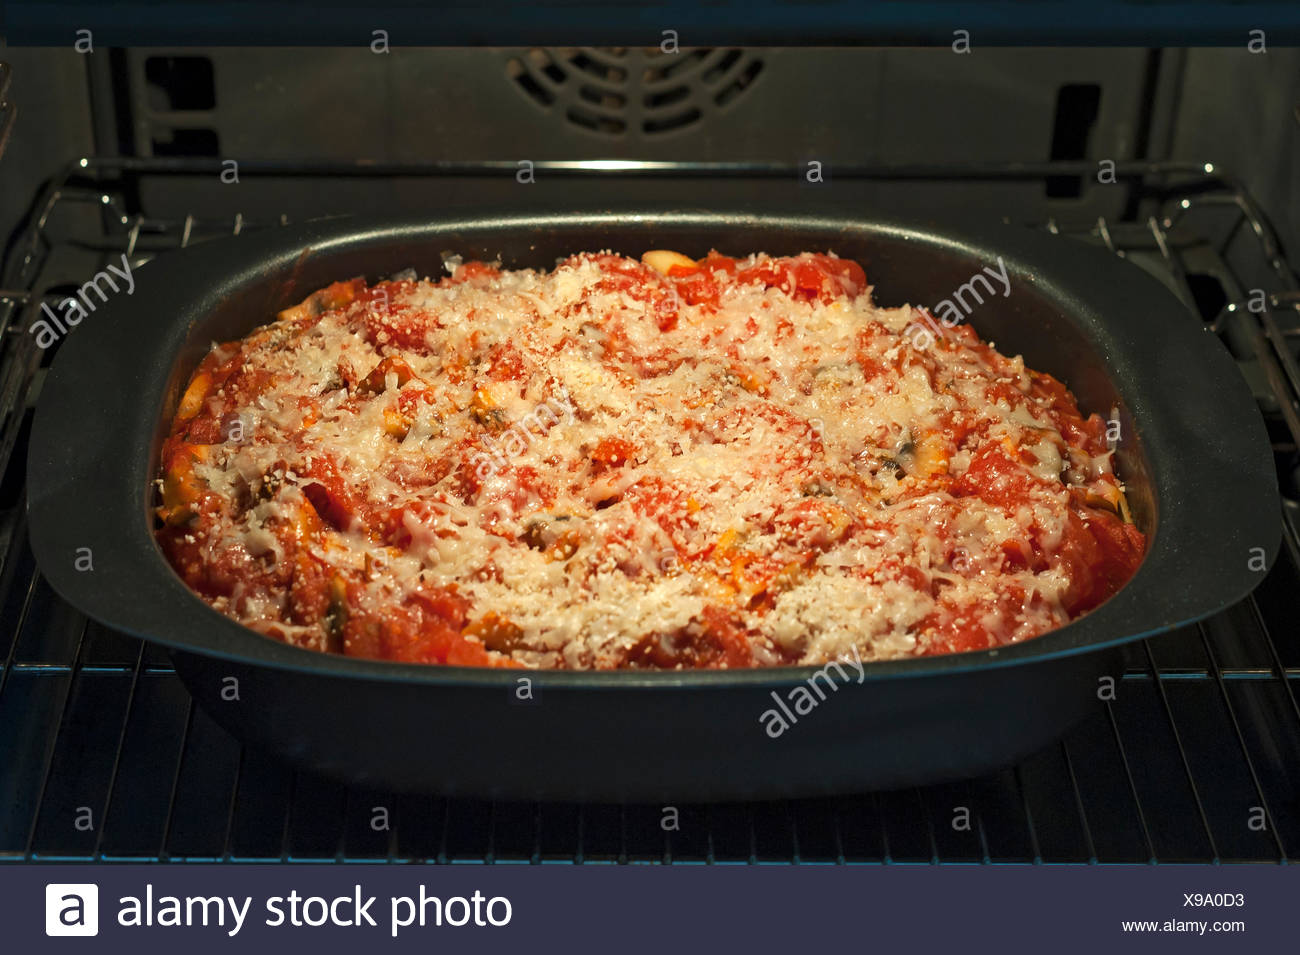 Baked pasta dish with tomato and cheese, in a pan in the oven Stock Photo